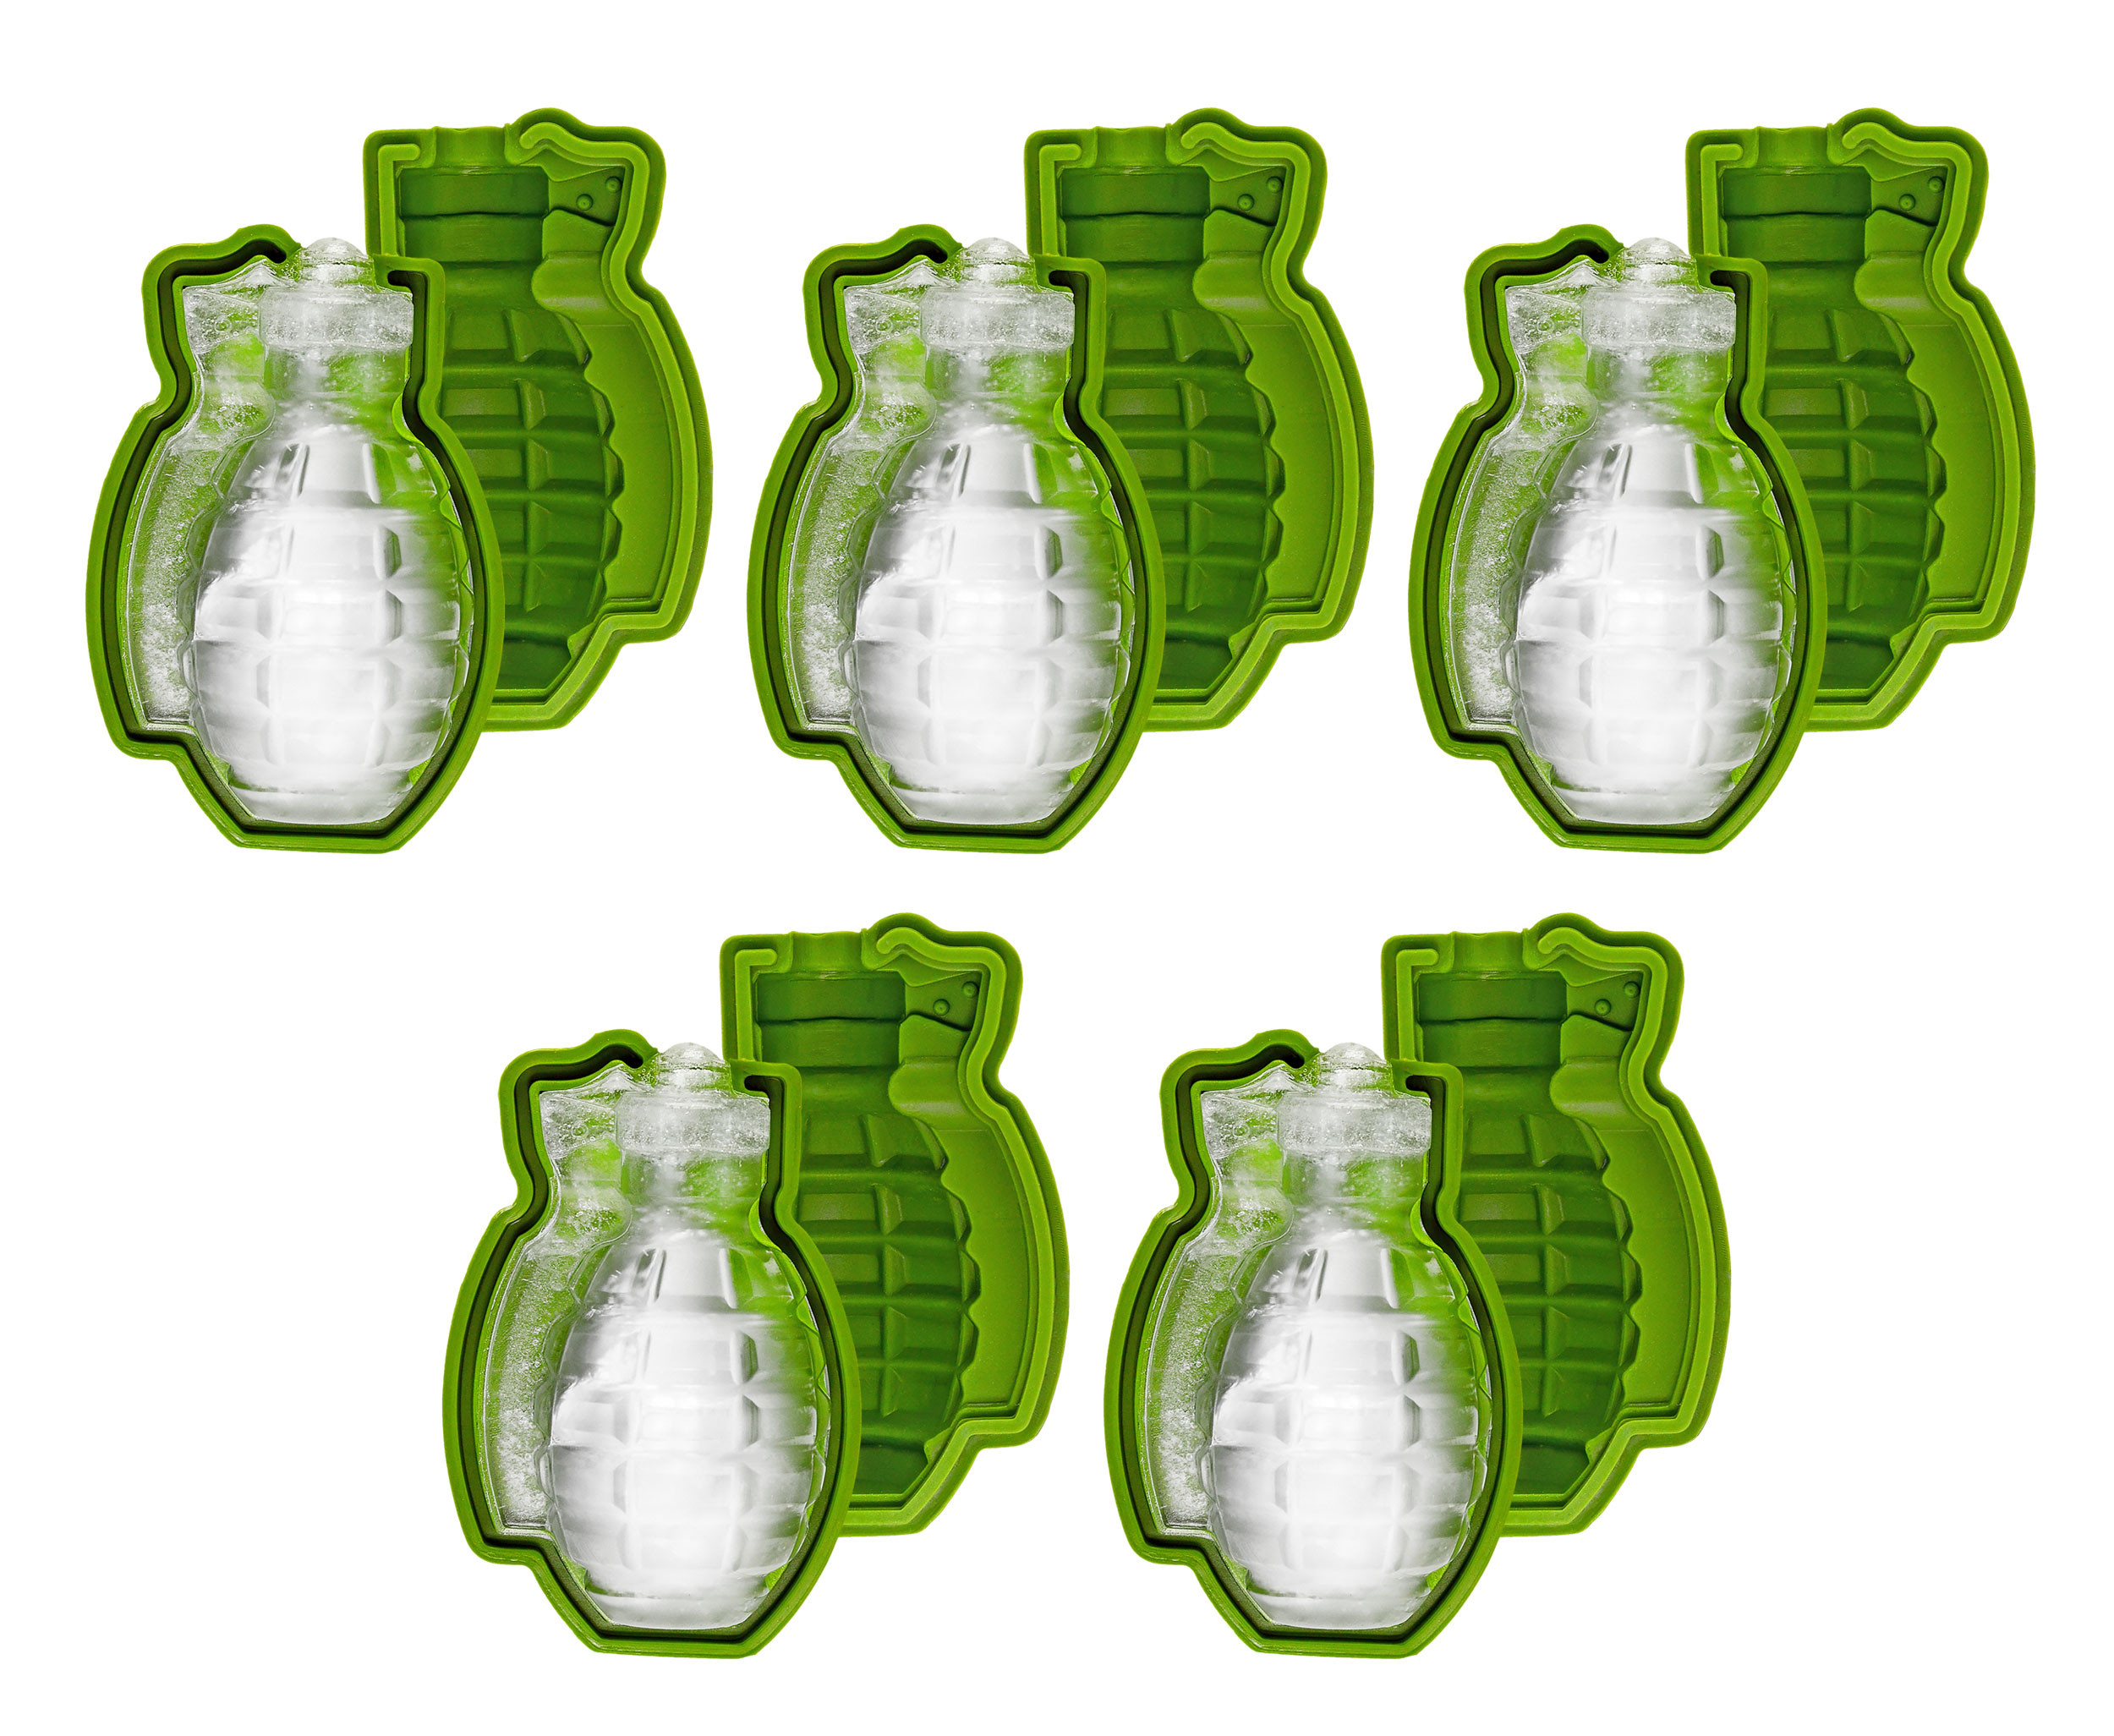 Grenade Ice Cube Mould, 5 Pack